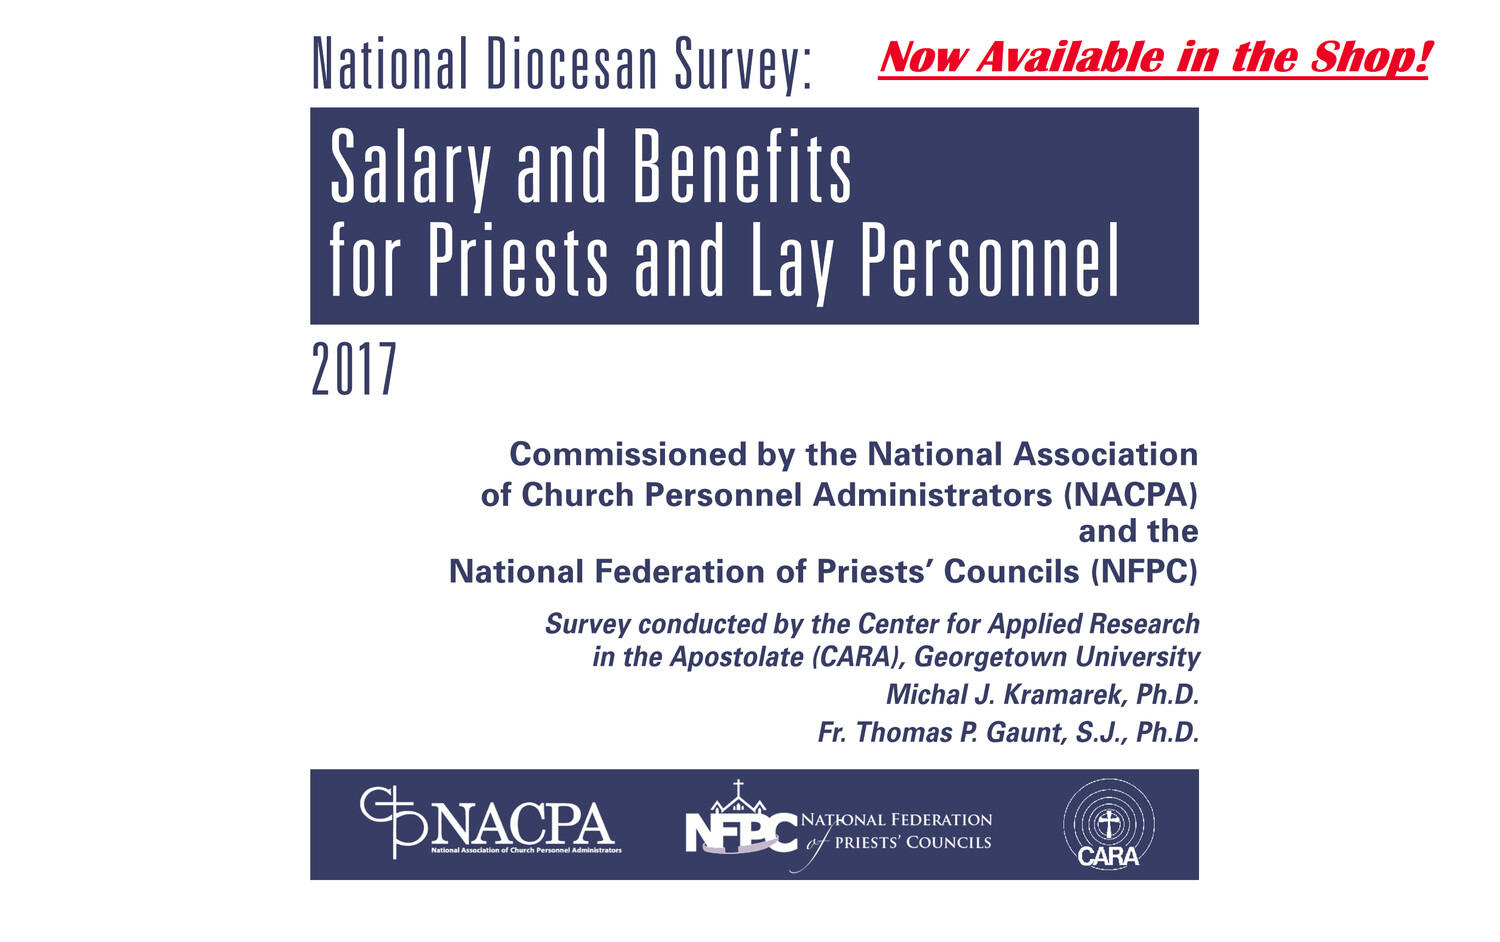 2017 National Diocesan Survey: Salary and Benefits for Priests and Lay Personnel PDF